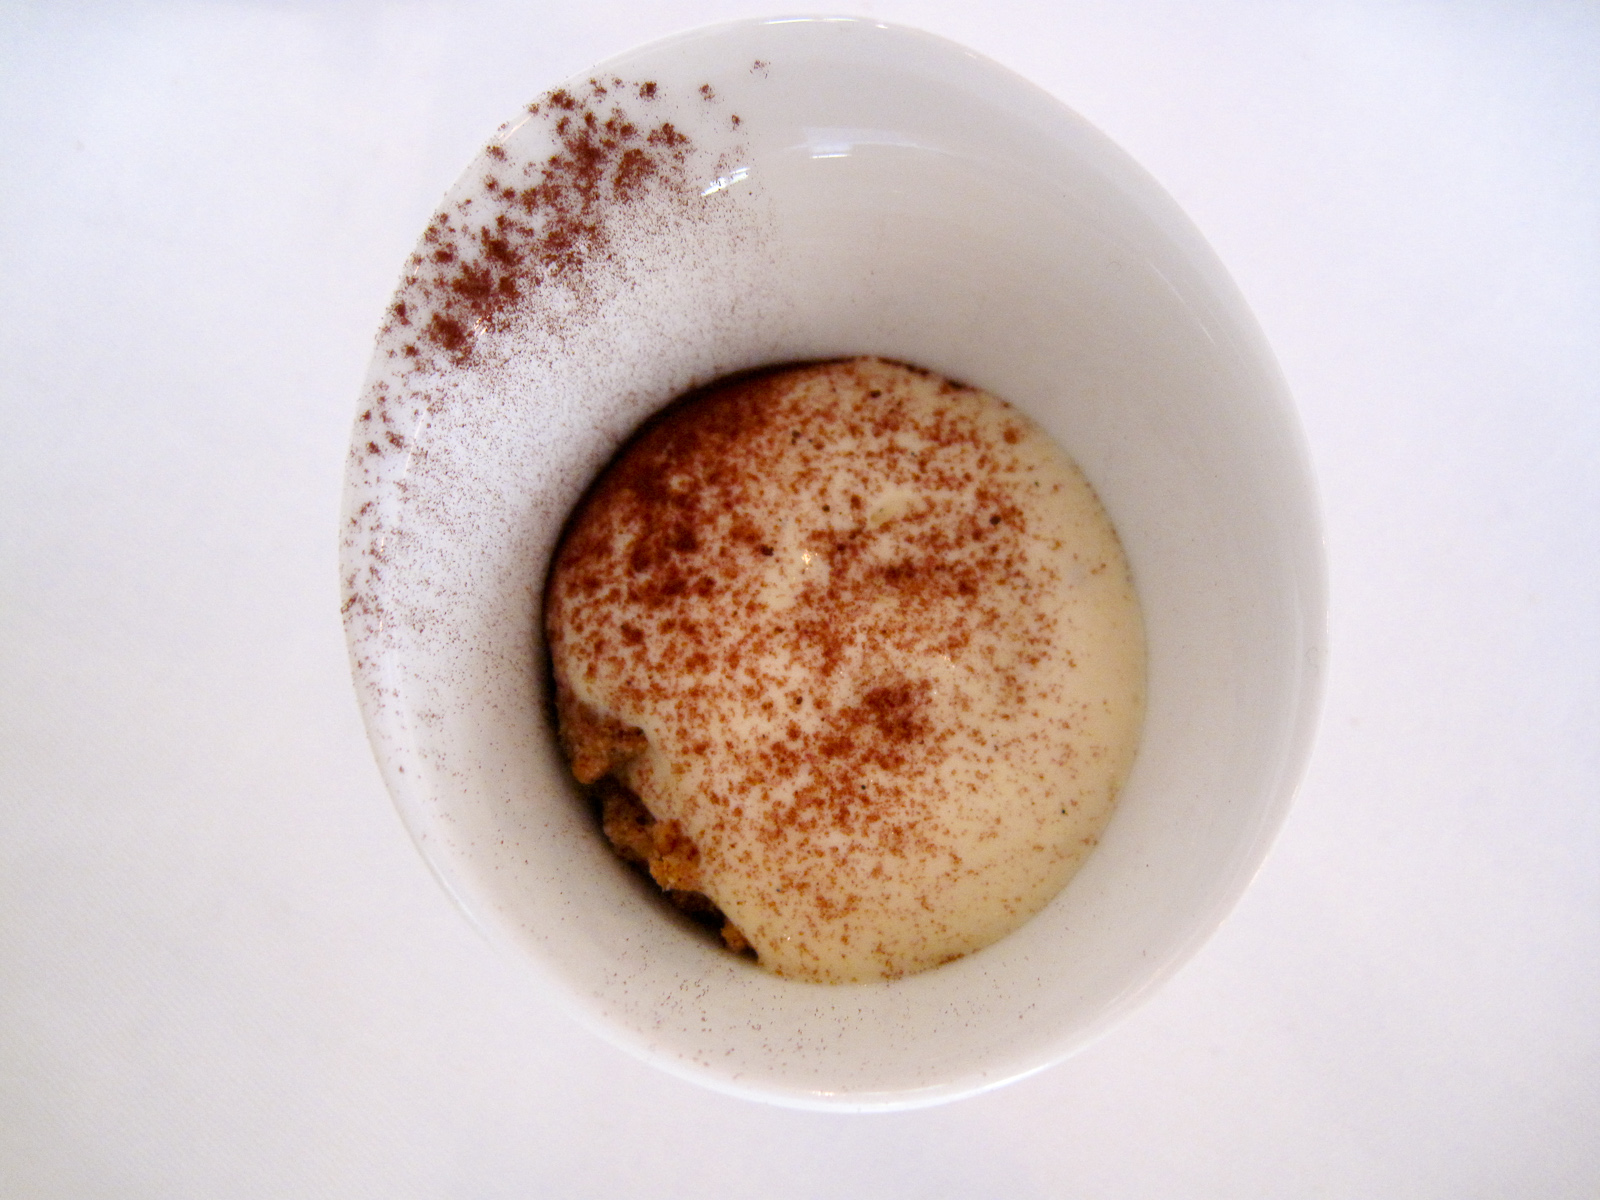 La Bigarrade - Tobacco infused oatmeal mousse, cocoa powder